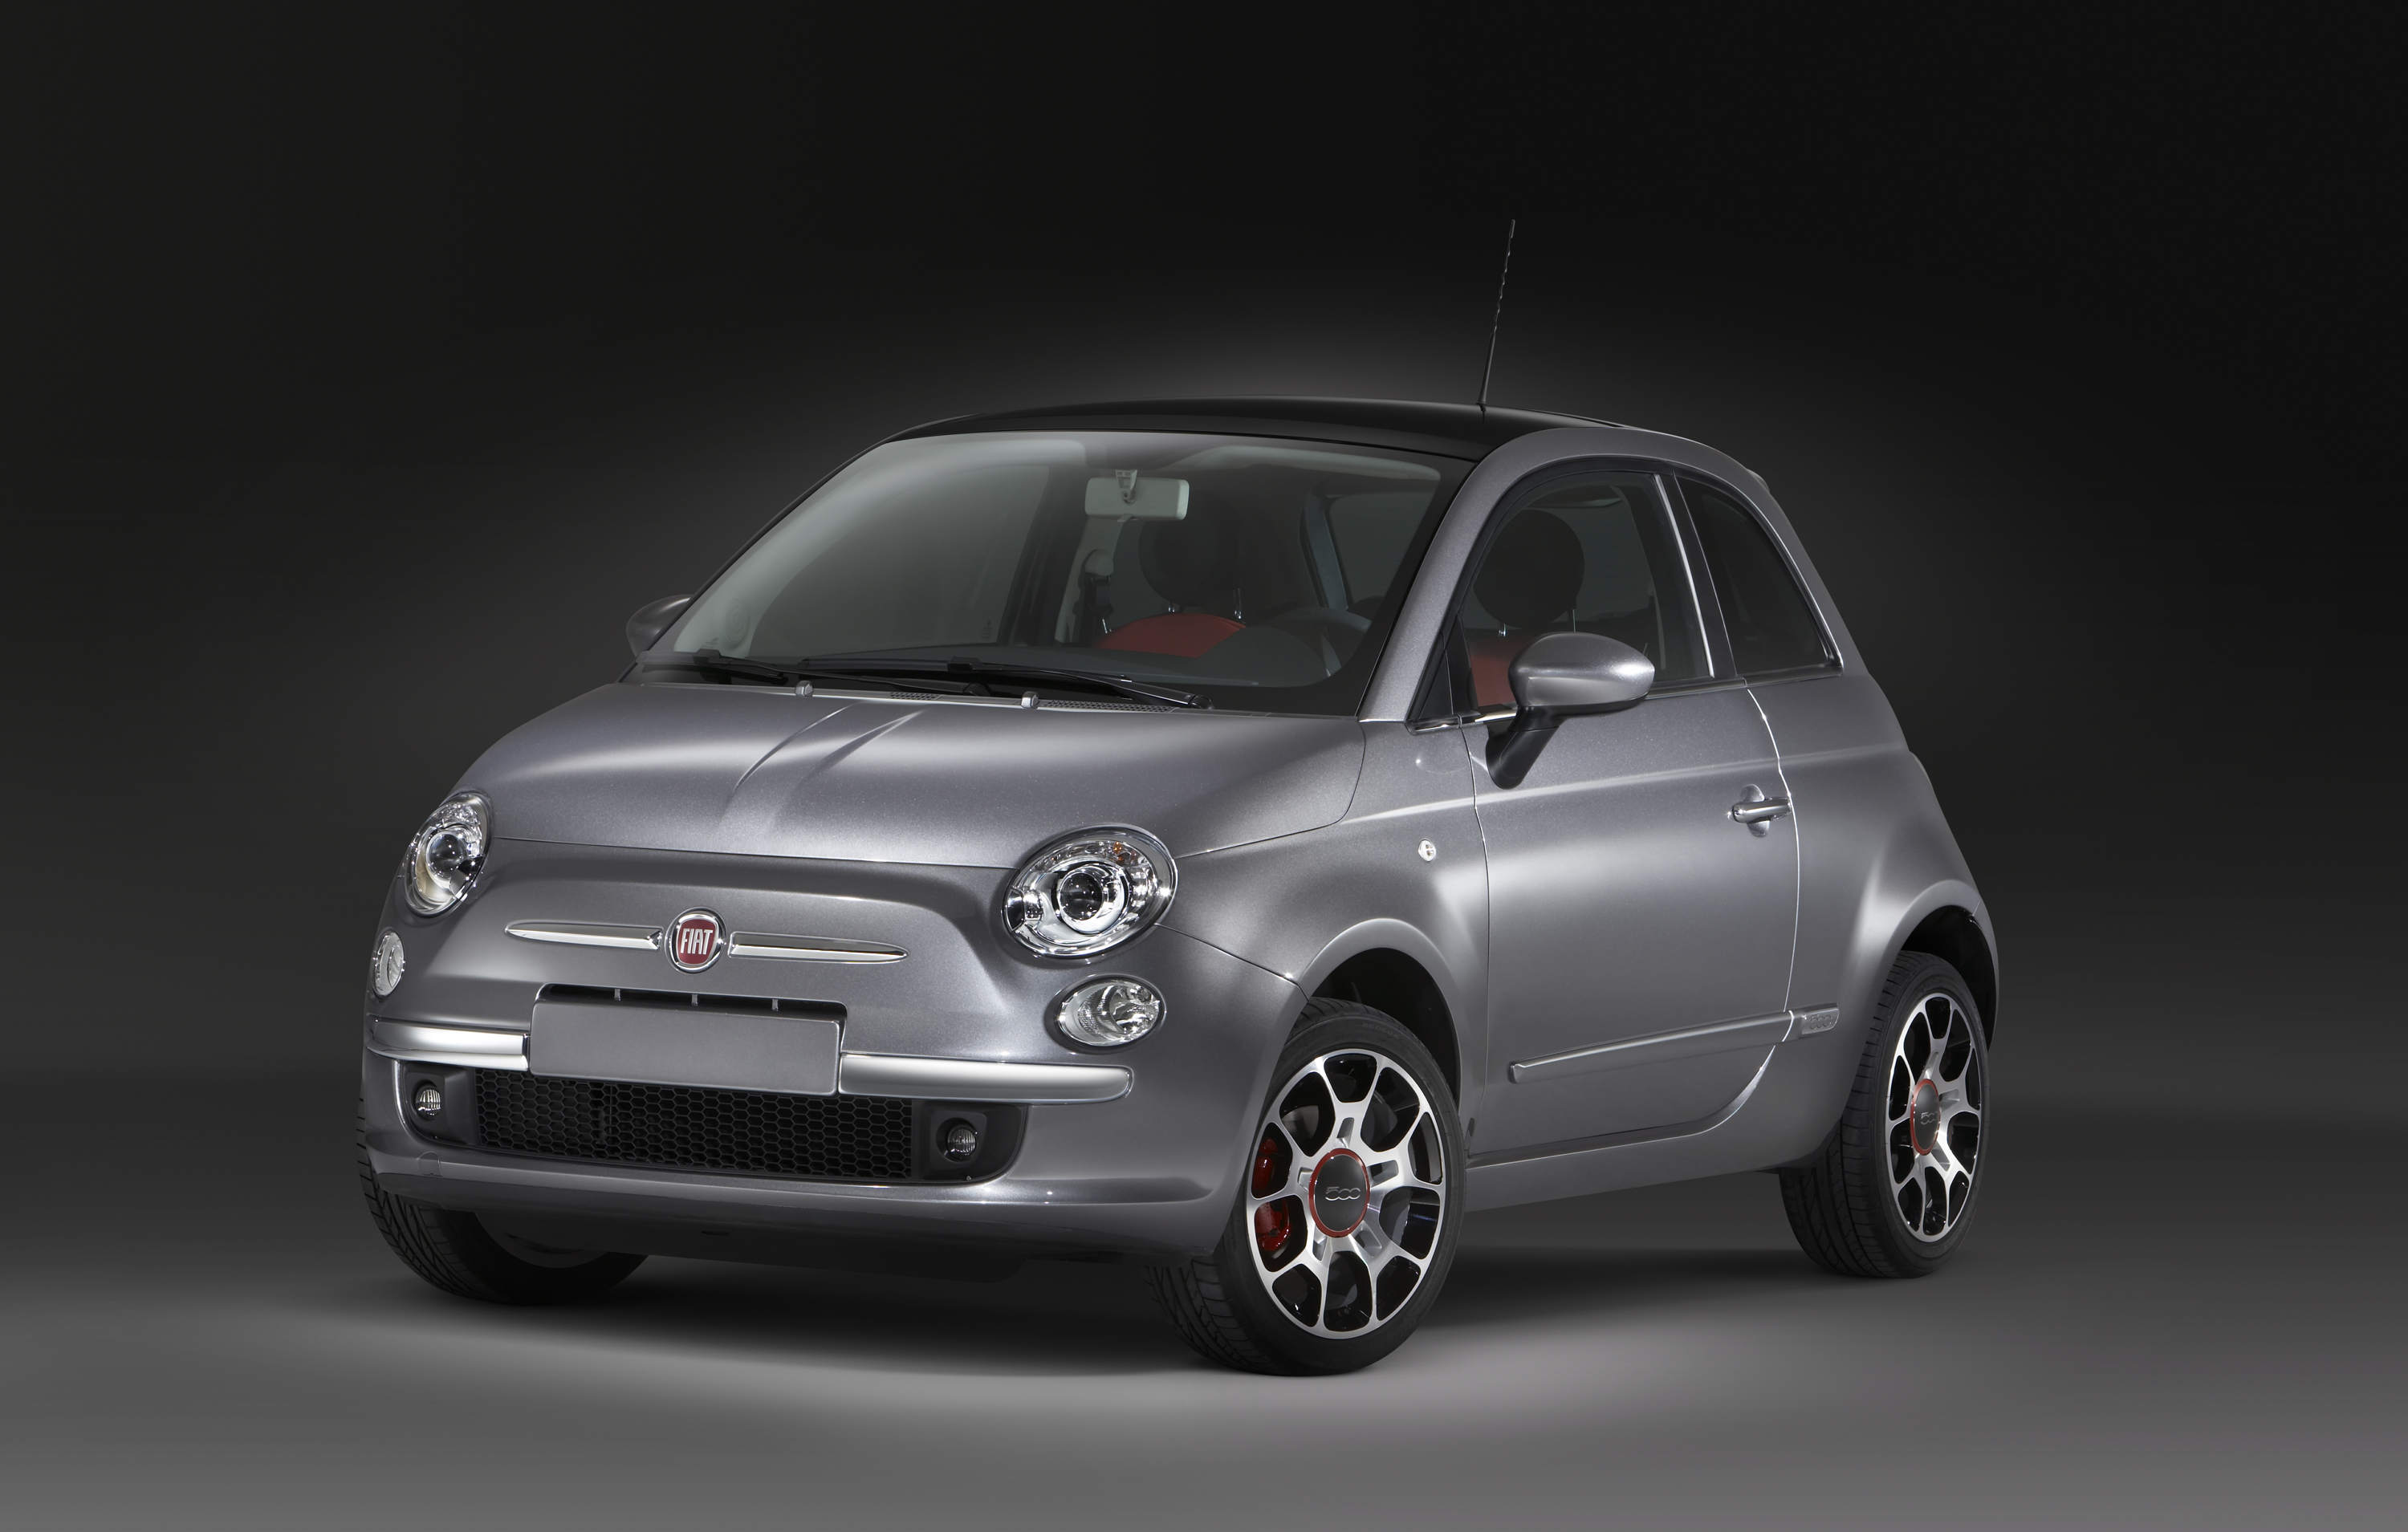 USA: illustrato ai concessionari Chrysler il piano per la Fiat 500